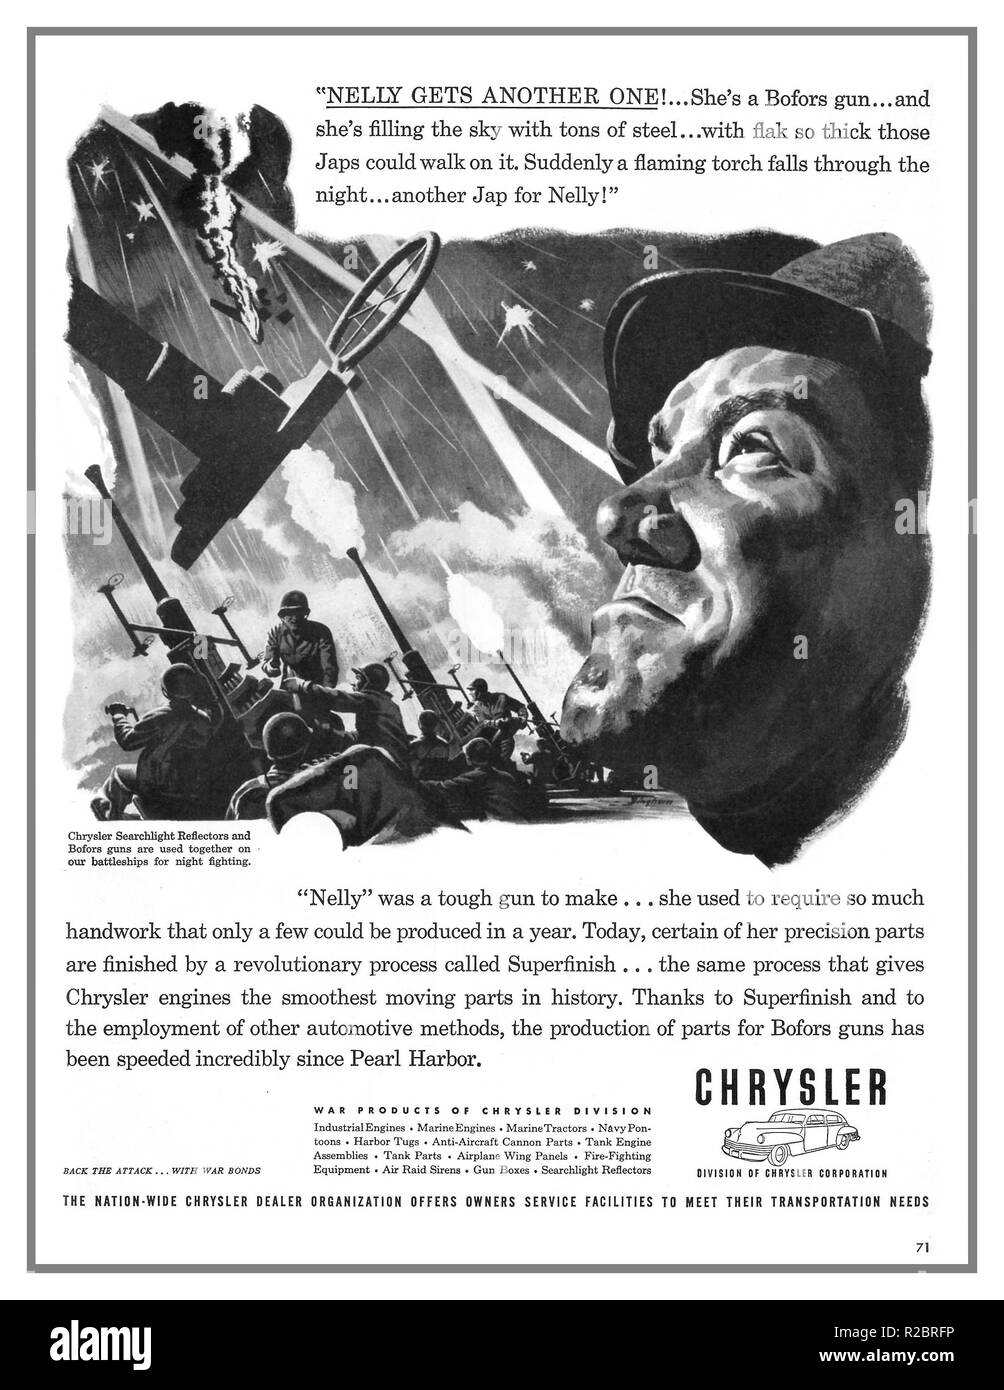 WW2 American propaganda advertisement by Chrysler Corporation 1940's war effort. Bofors Gun and searchlight reflectors production in USA speedily increased since Japanese aggression at Pearl Harbor - Stock Image